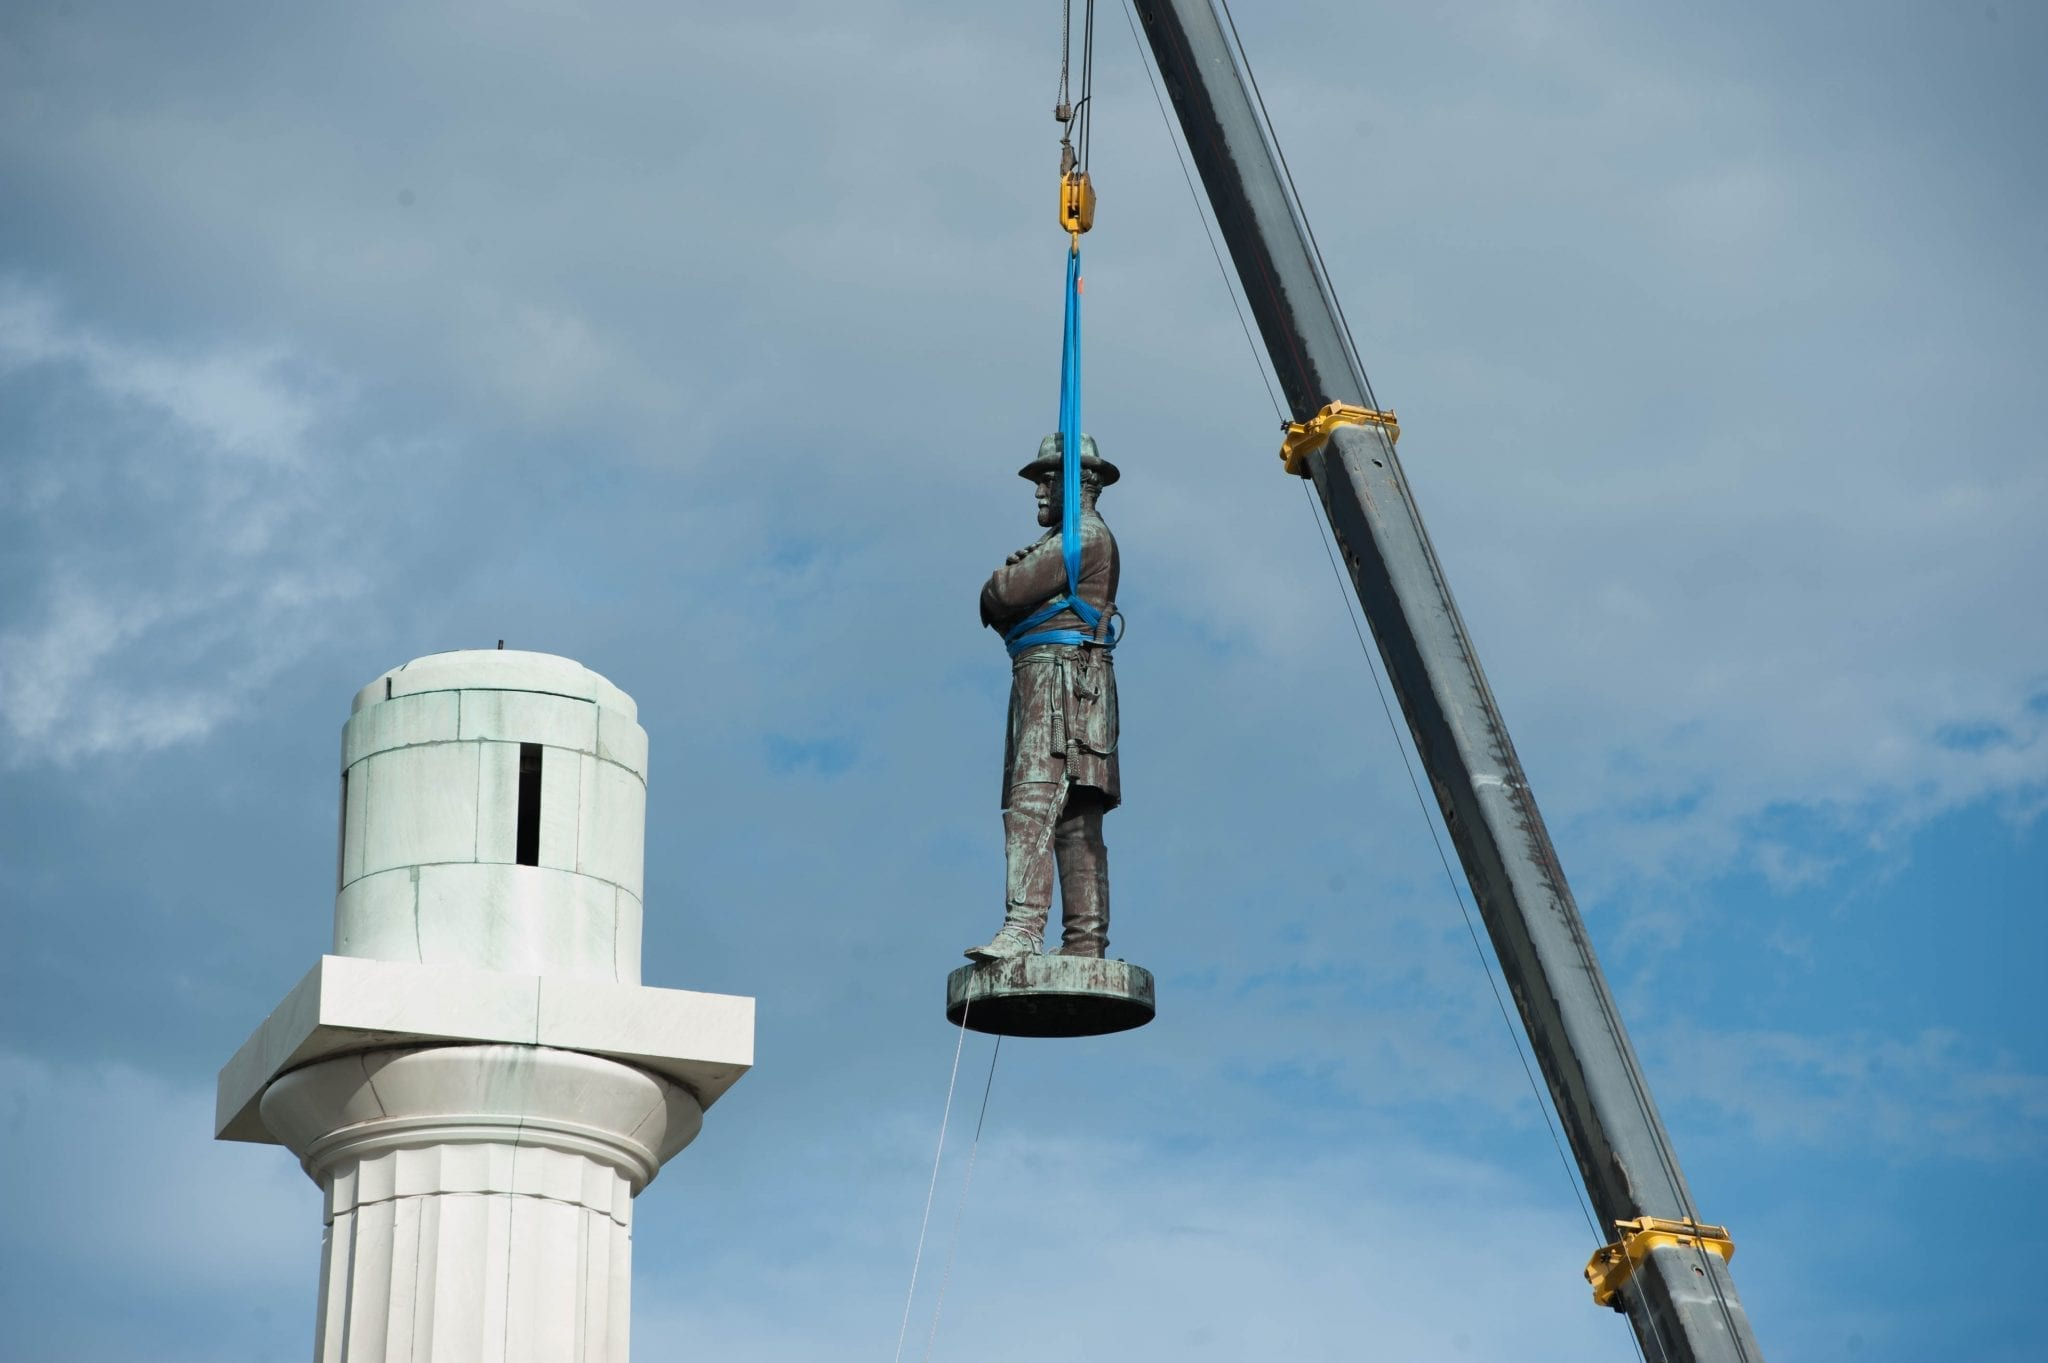 Robert E. Lee statue being removed; image by Abdazizar (Own work), CC BY-SA 4.0, via Wikimedia Commons, no changes.